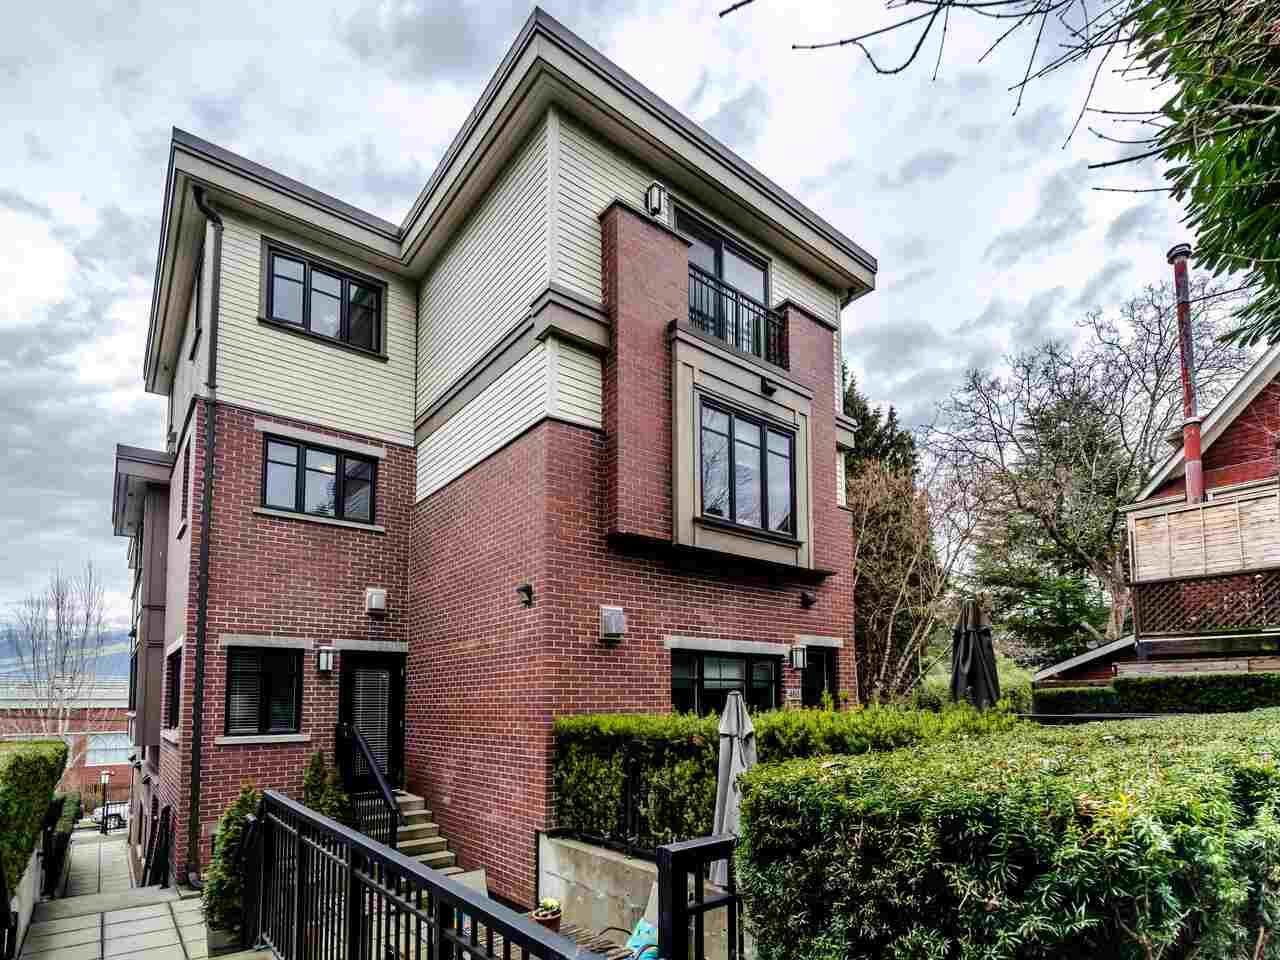 Main Photo: 462 E 5TH Avenue in Vancouver: Mount Pleasant VE Townhouse for sale (Vancouver East)  : MLS®# R2544959